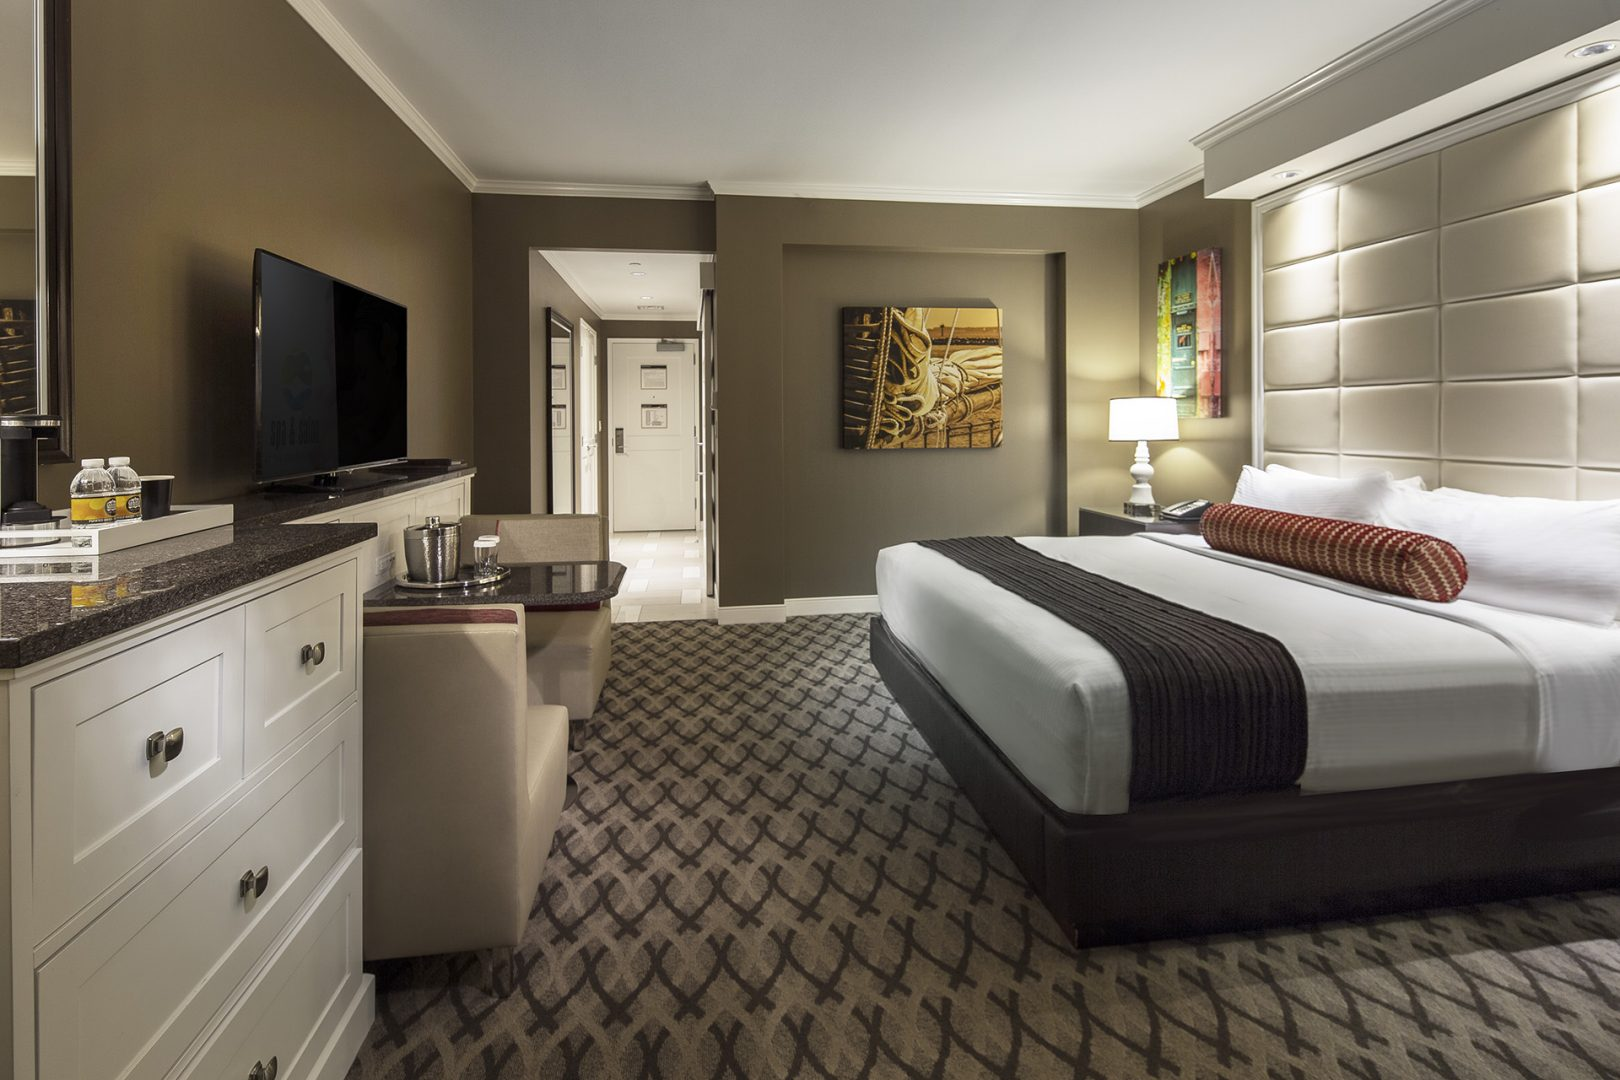 Hospitality Architecture Interior Design Golden Nugget Lake Charles Rush Tower King Room